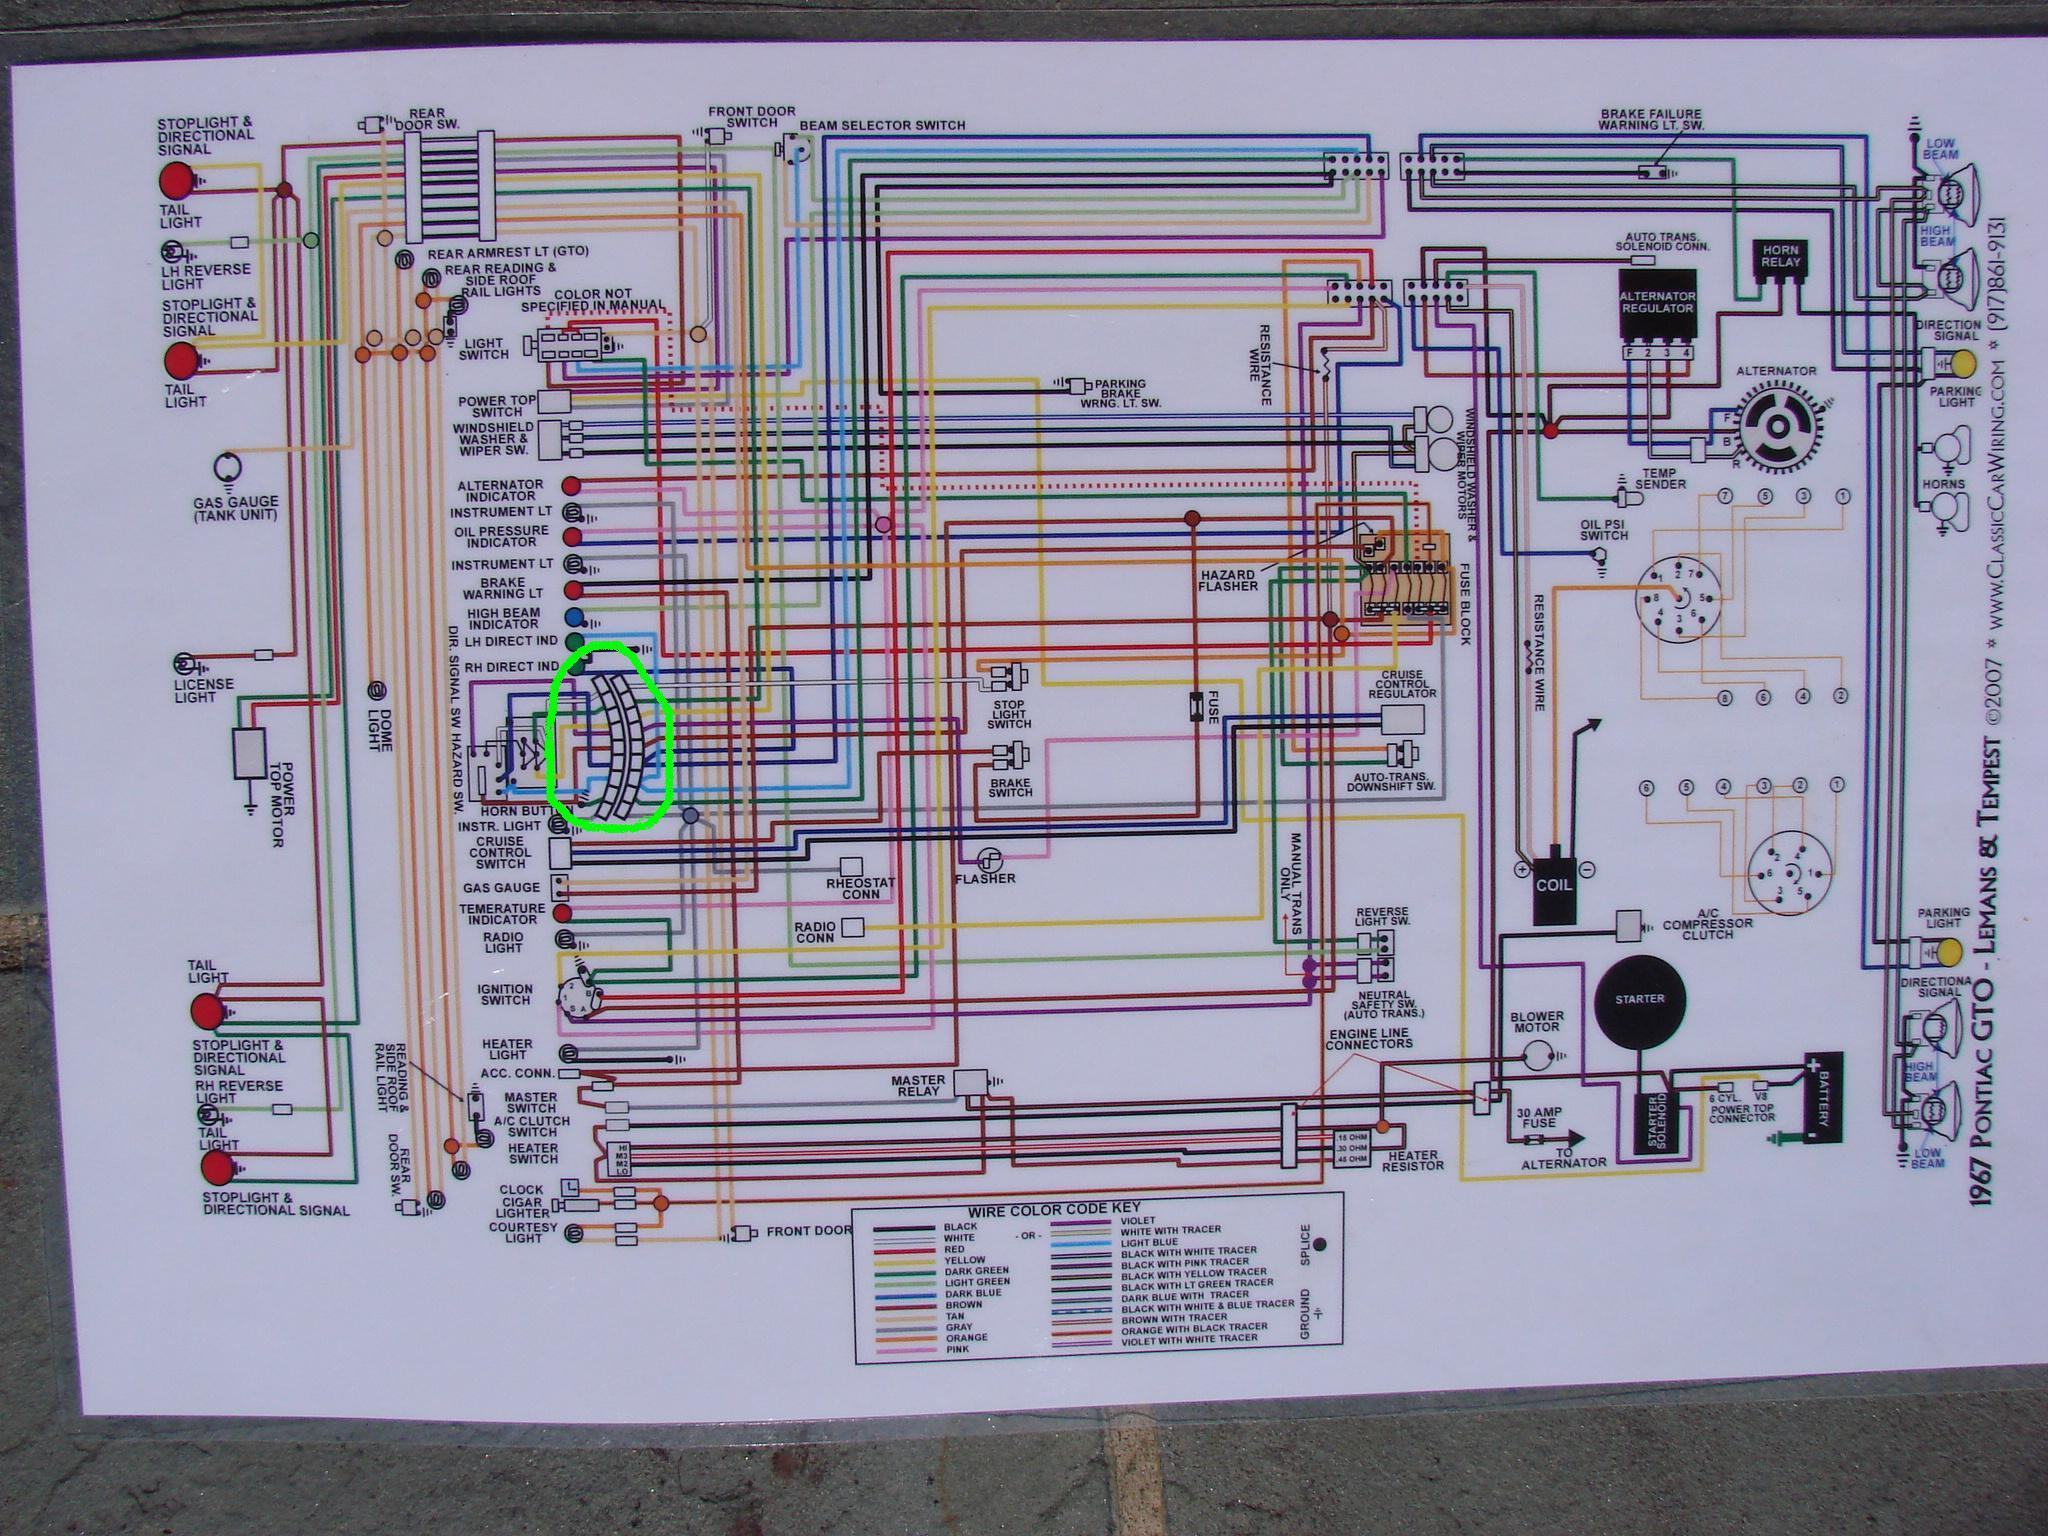 diagram] 2004 pontiac gto turn signal switch wiring diagram full version hd  quality wiring diagram - autodiagrams.bistrotdescapucins.fr  autodiagrams.bistrotdescapucins.fr